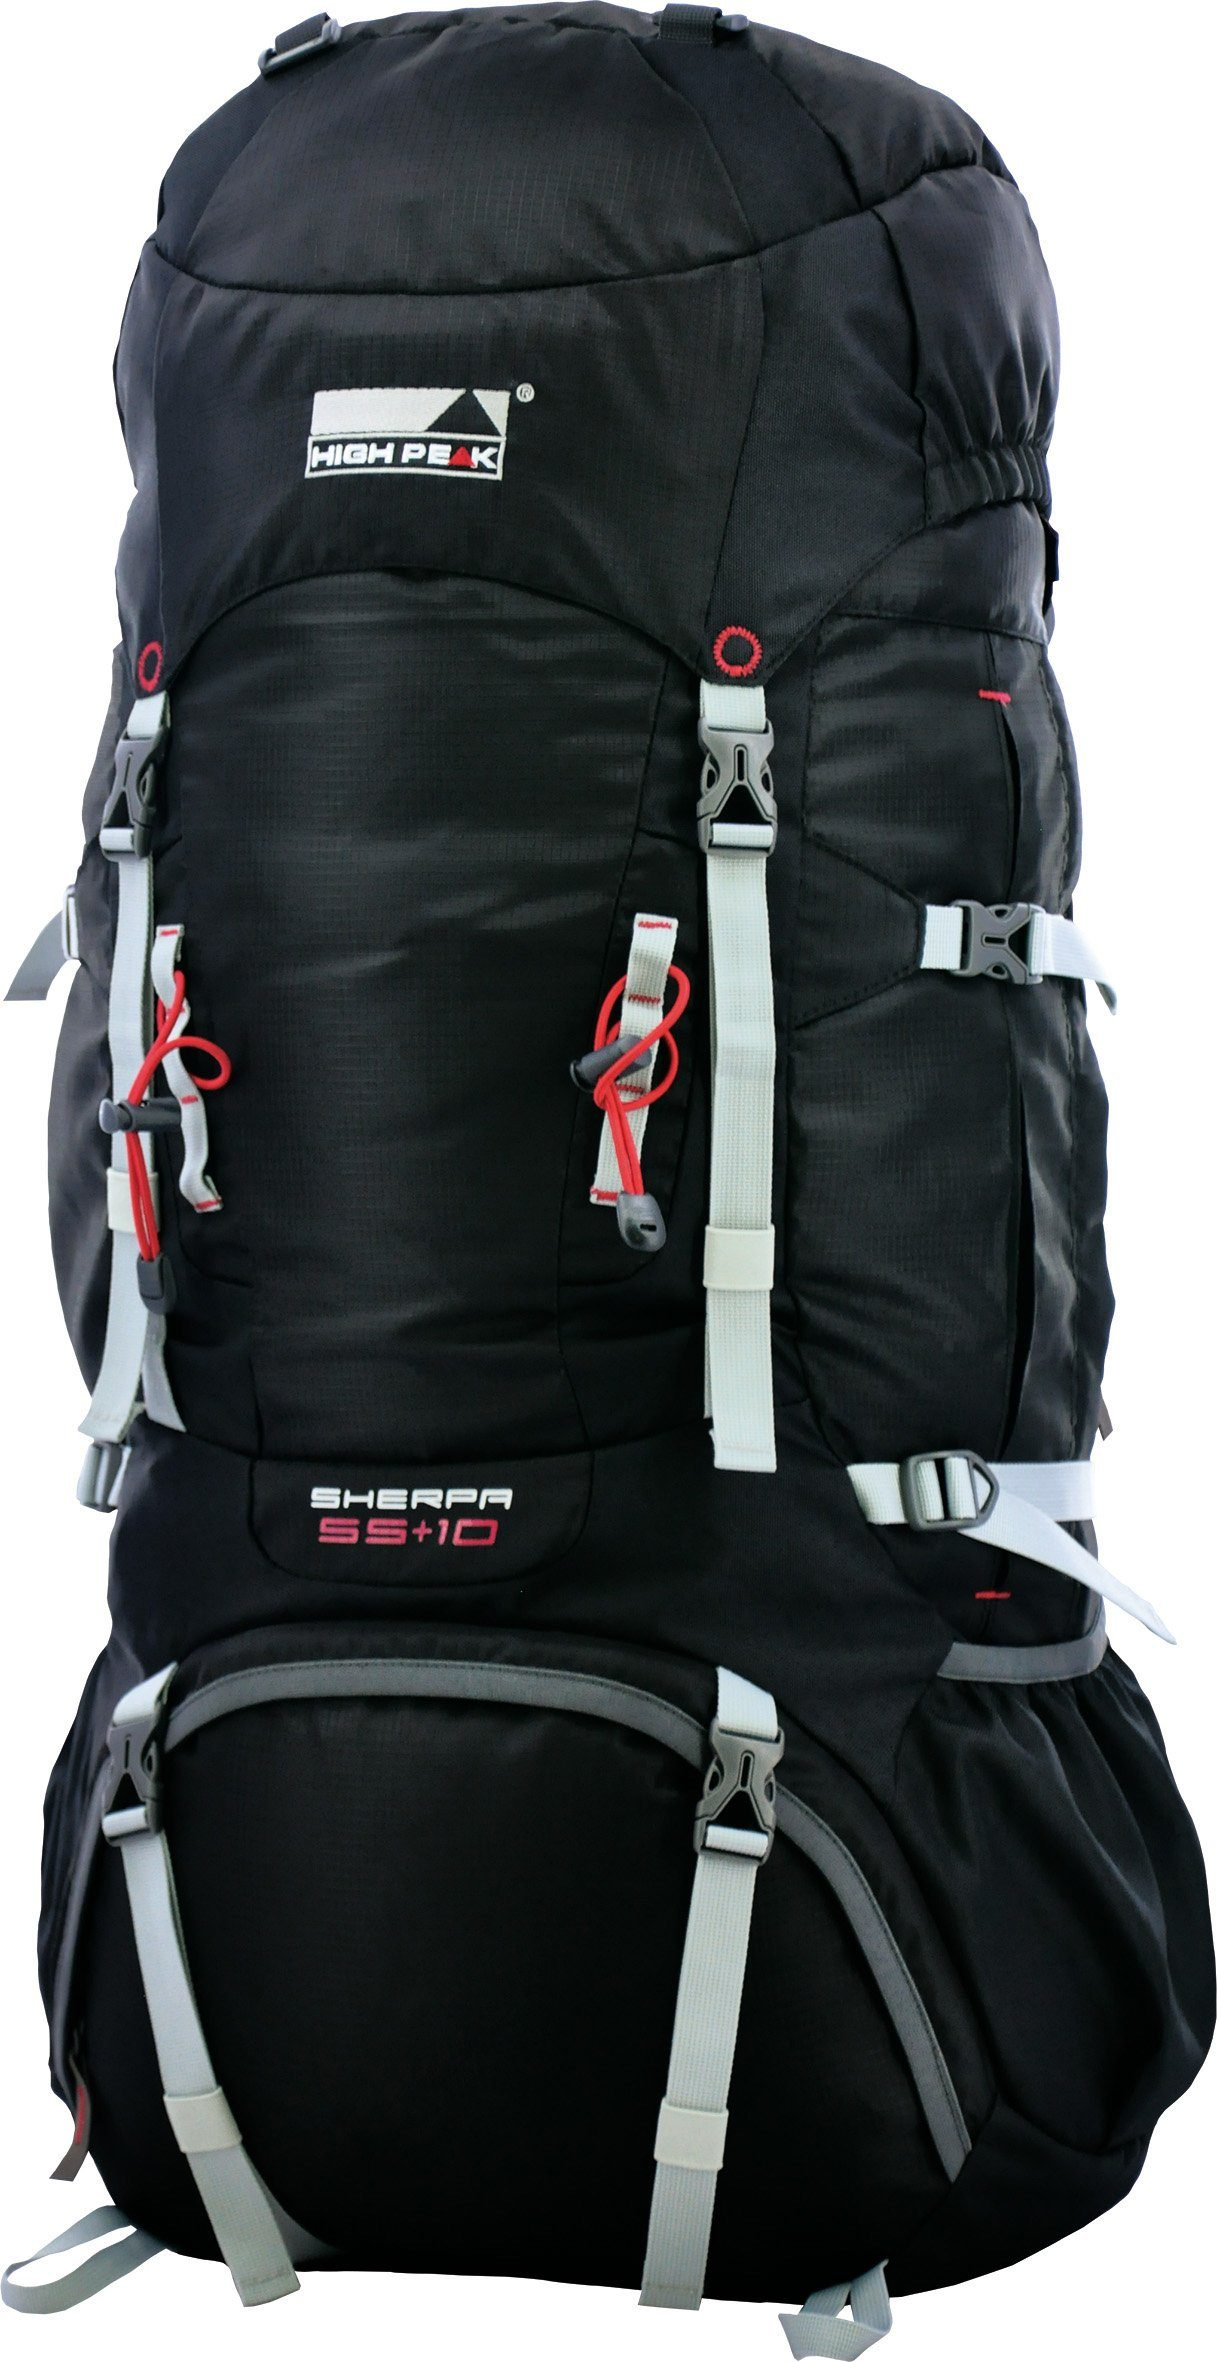 High Peak Tourenrucksack, »Sherpa 55+10«